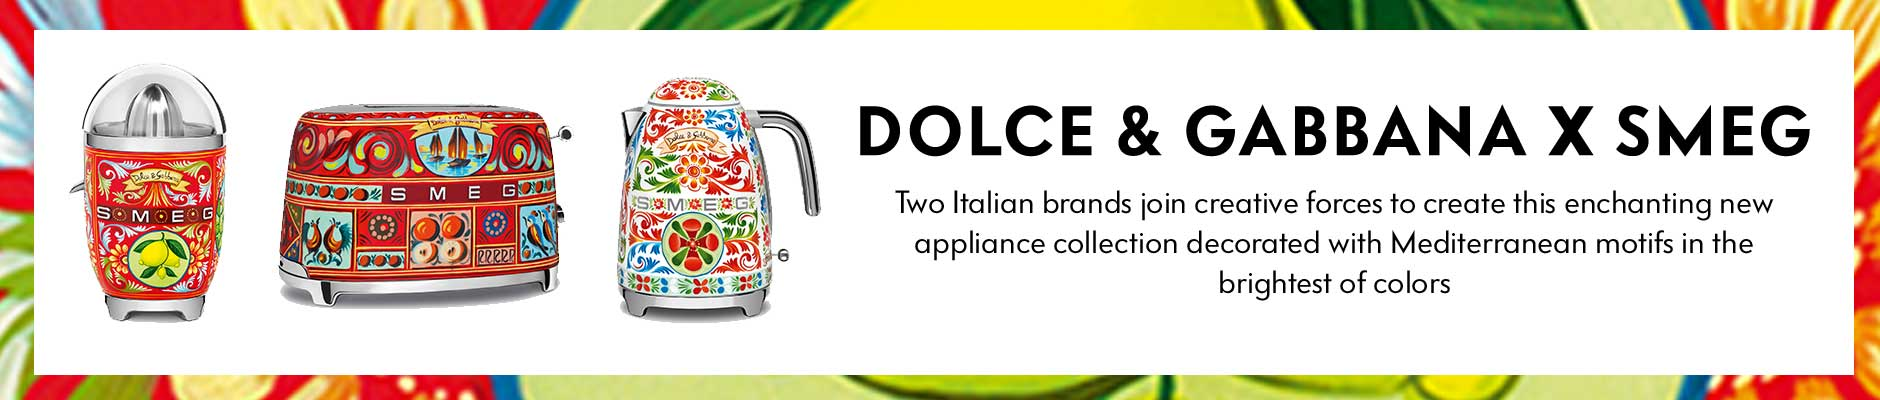 Dolce & Gabbana x SMEG - Two Italian brands join creative forces to create this enchanting new appliance collection decorated with Mediterranean motifs in the brightest of colors